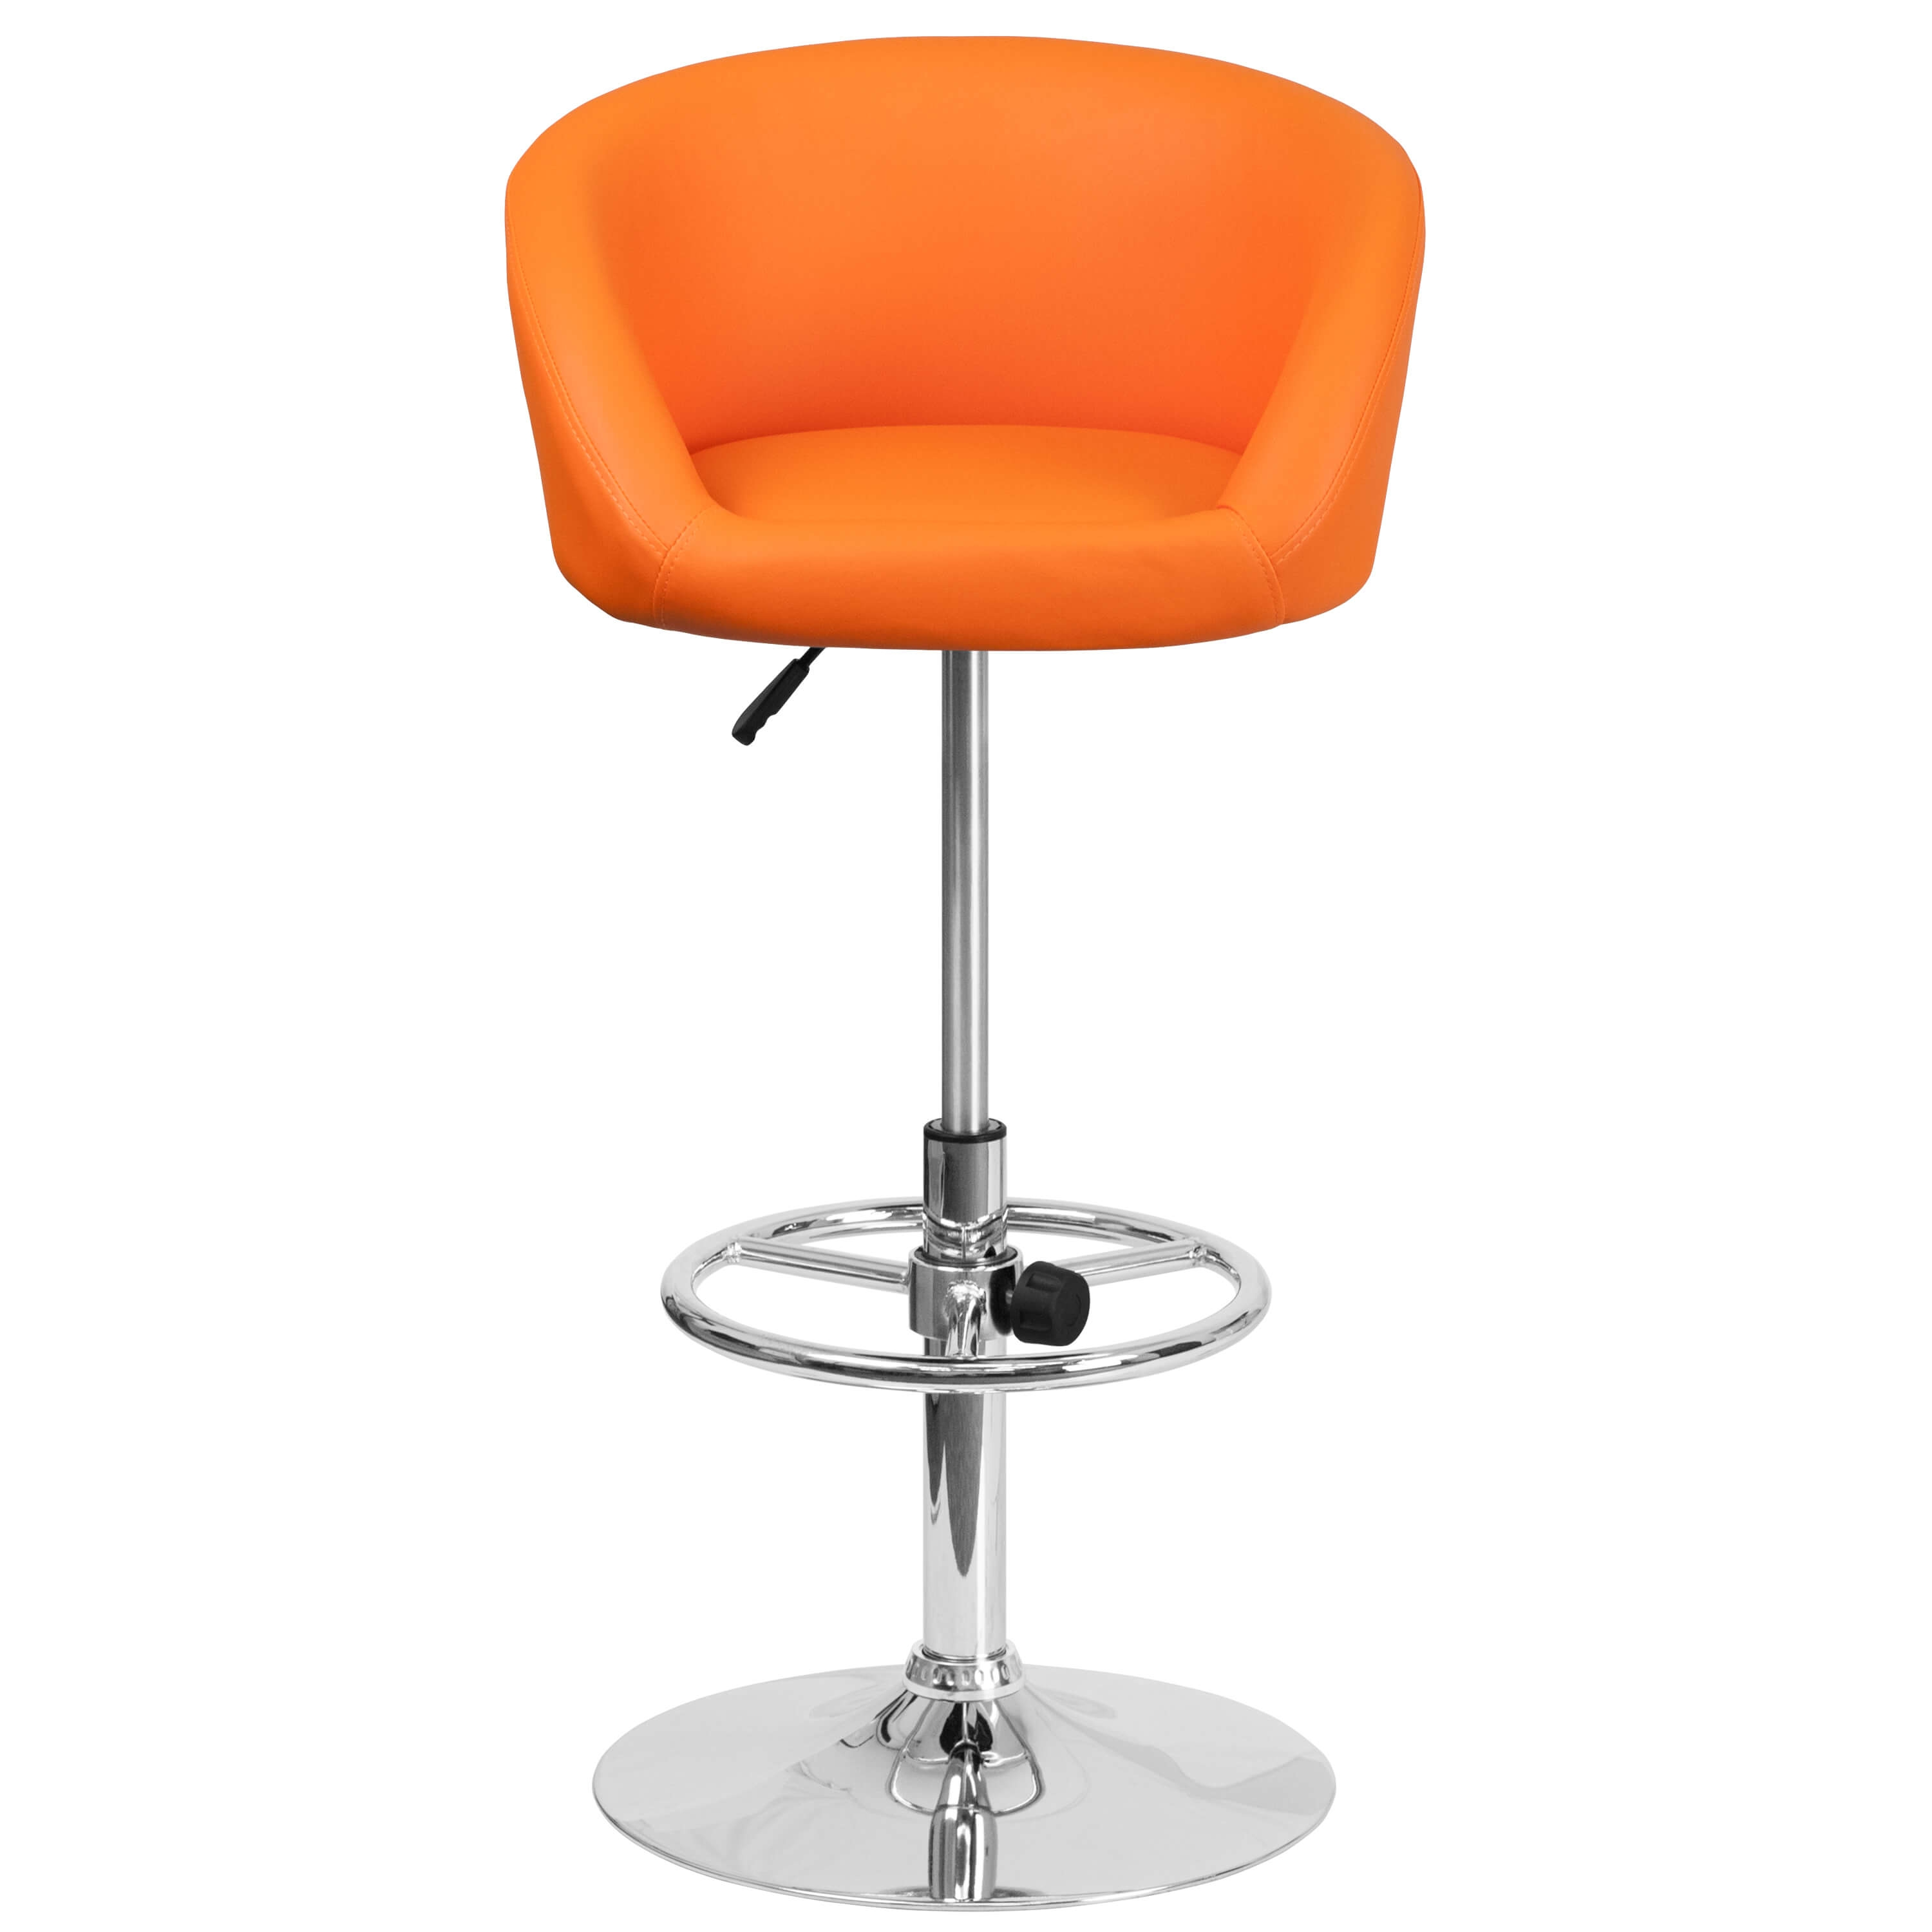 Adjustable colorful bar stools front view